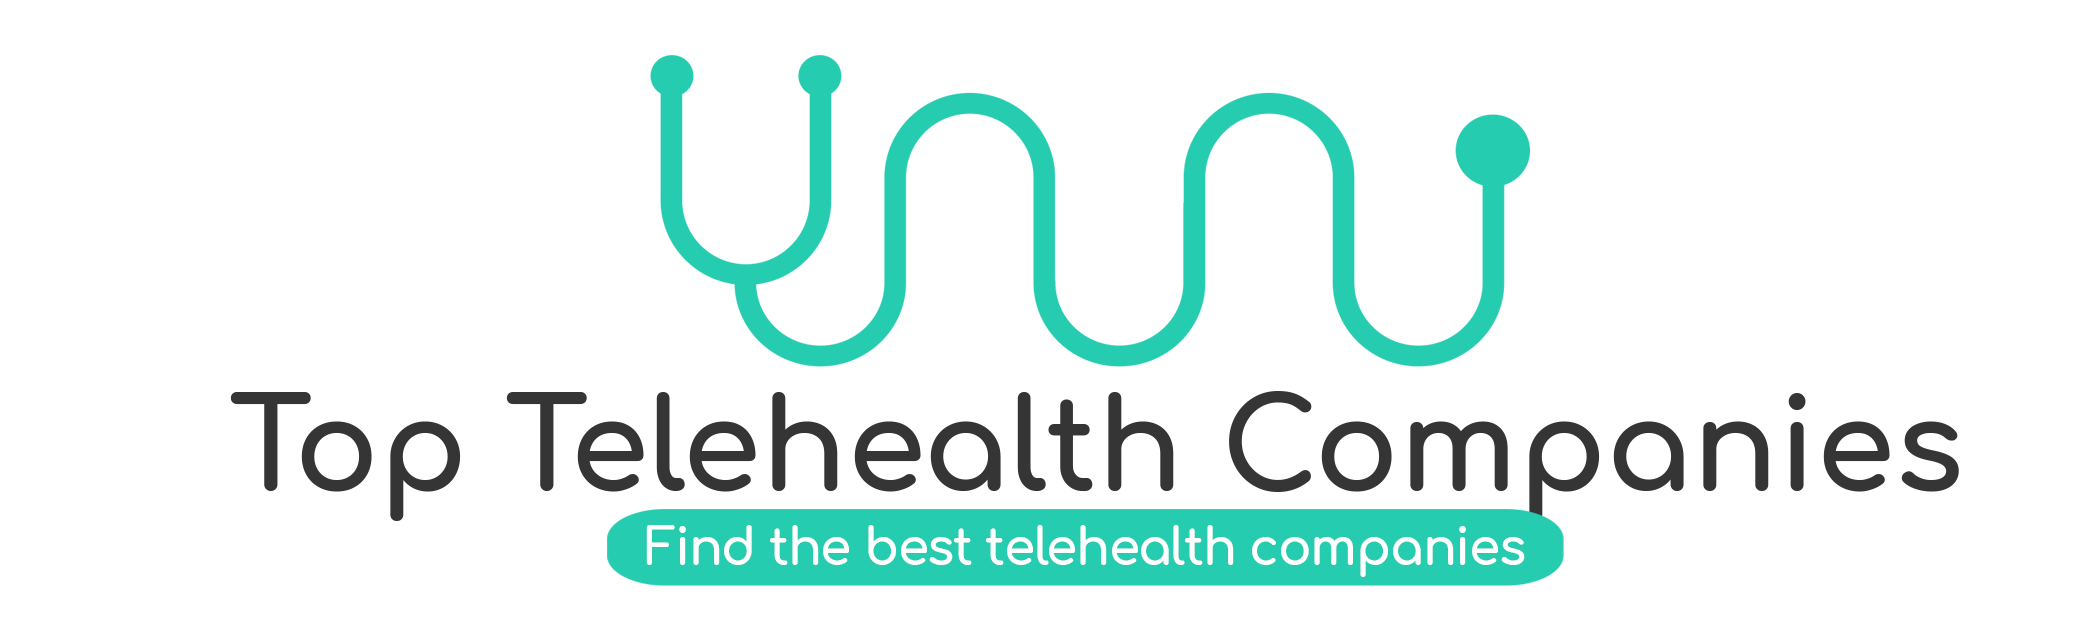 Find the Top Telehealth Companies - Comparisons and Reviews